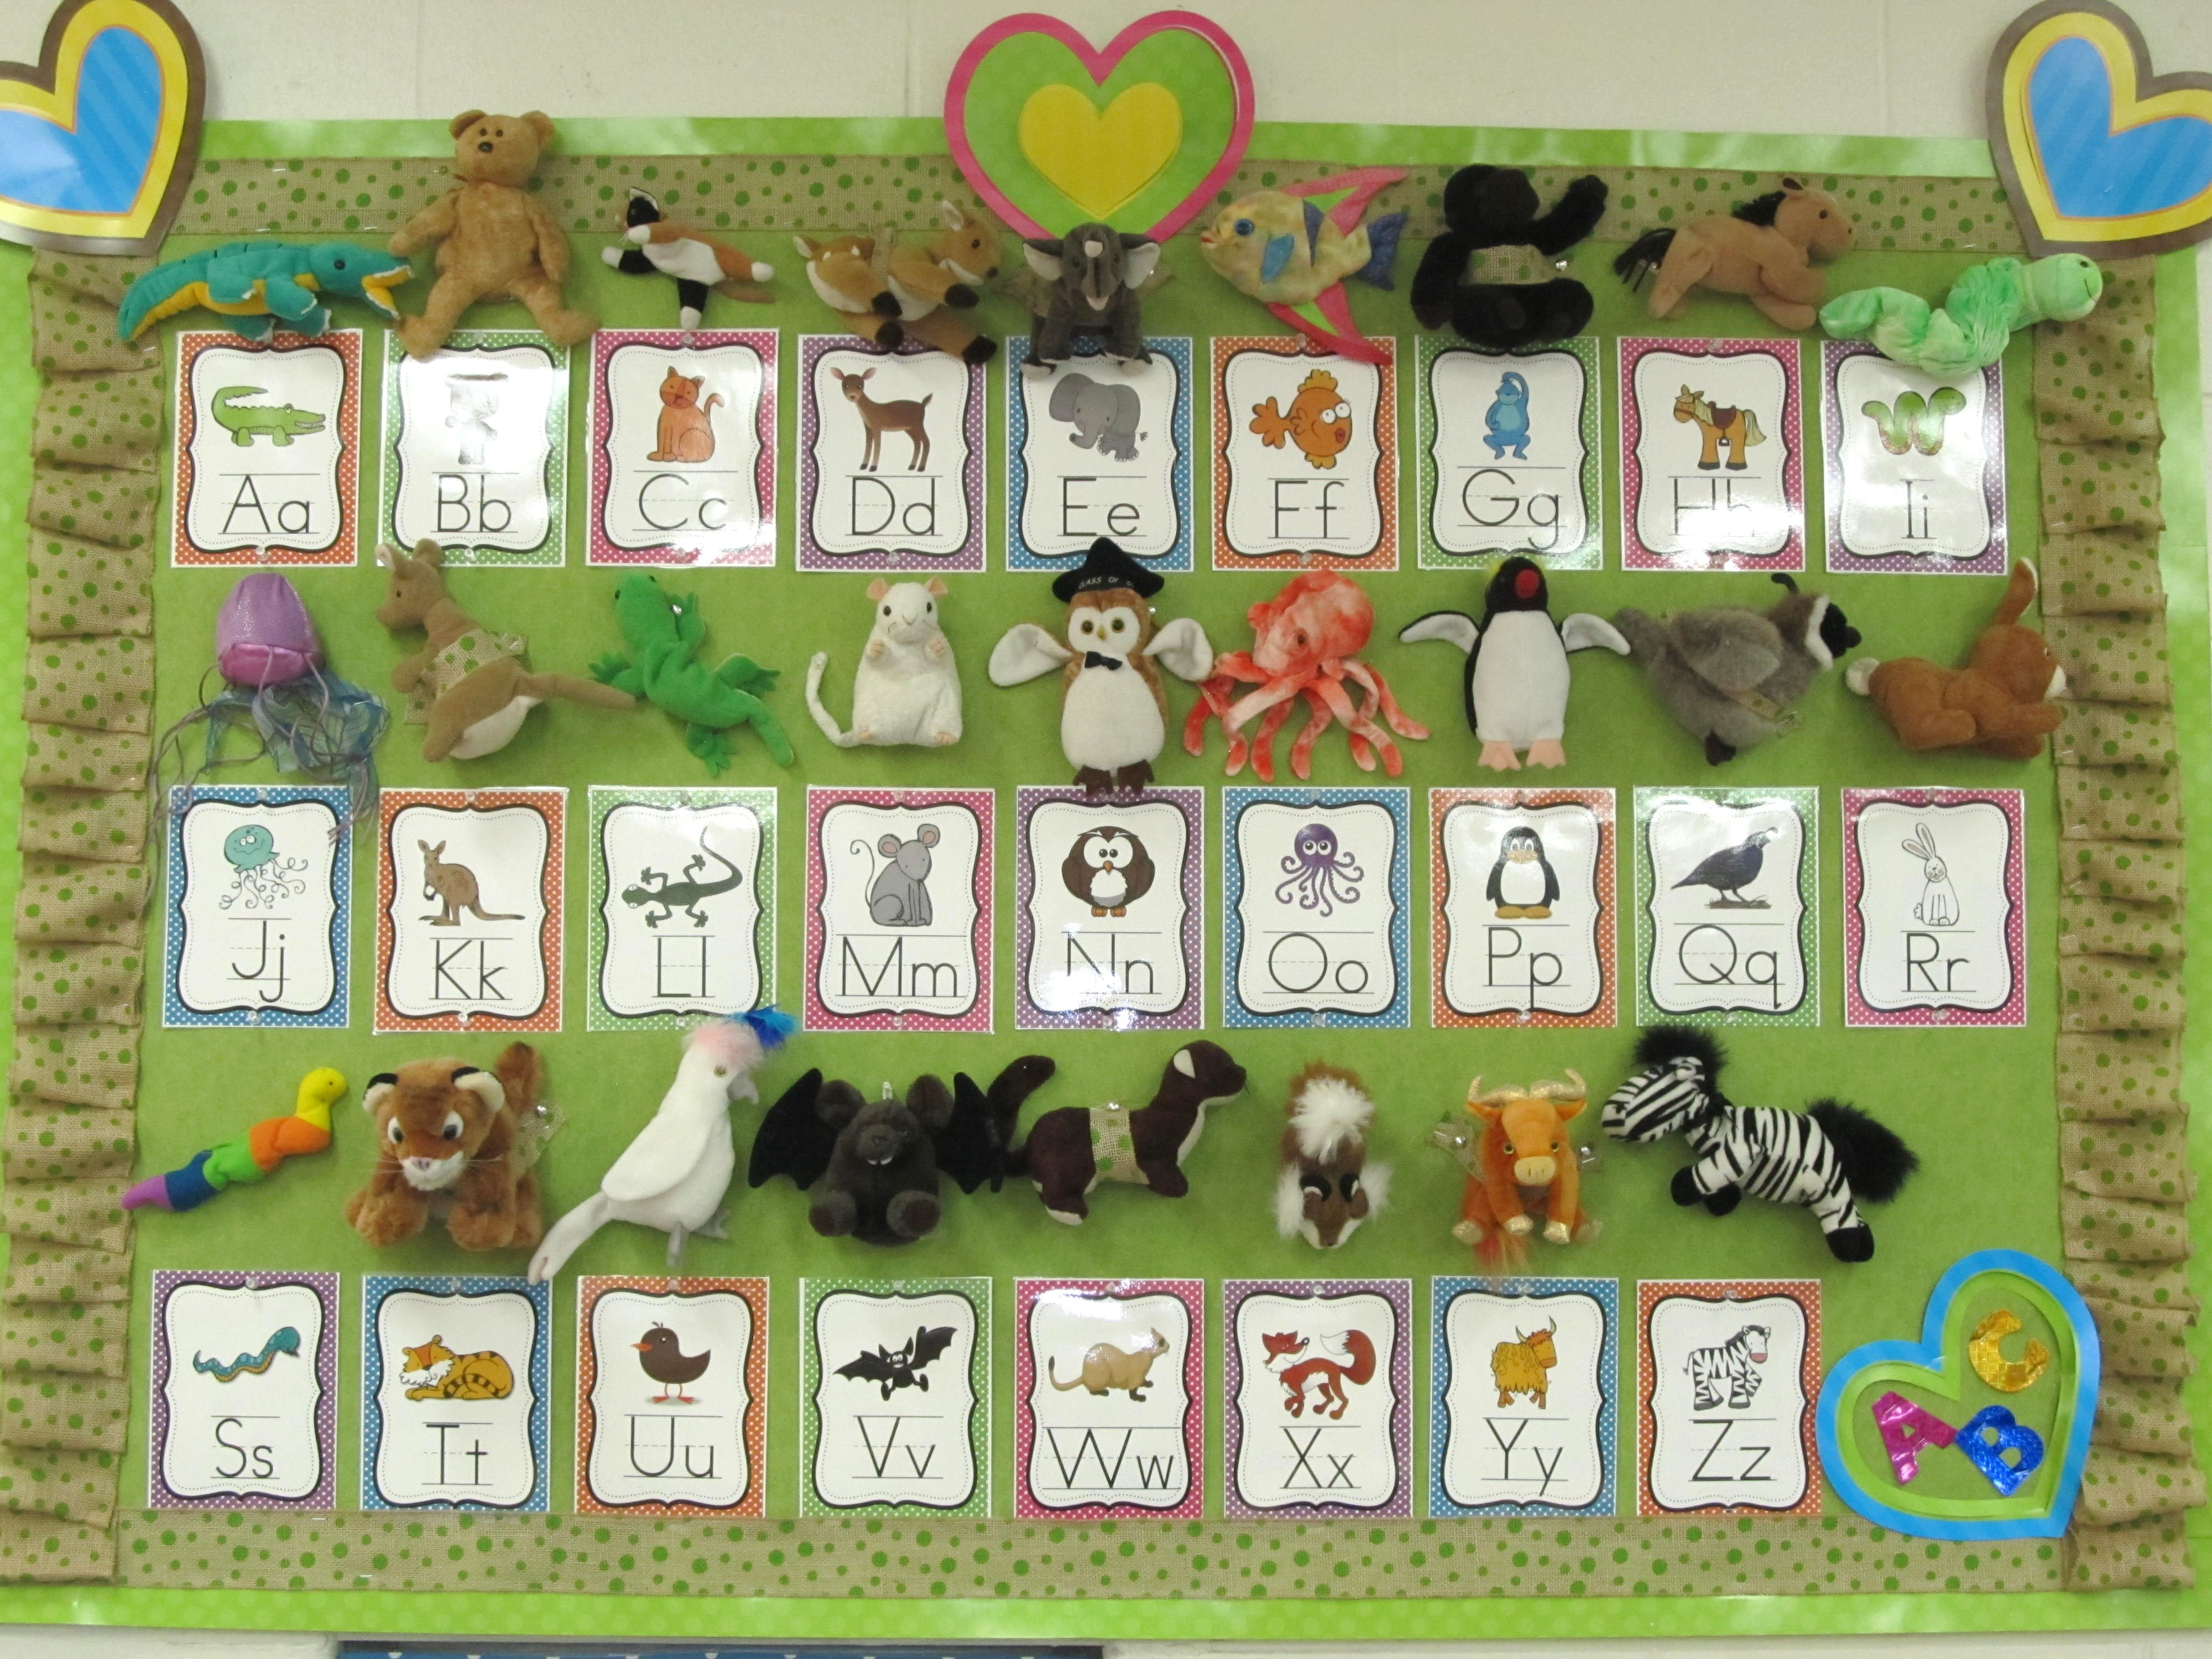 Eighth Grade Reading Comprehension Worksheets Word Best  Zoo Phonics Ideas On Pinterest  Abc Zoo Phonics Sounds  Adding And Subtracting Unlike Fractions Worksheet Excel with Esl Activities For Adults Worksheets My Zoo Phonics Board With Beanie Babies For This Year Zoo Phonicsteaching  Phonicsteaching Kindergartenteaching Ideaspreschoolabc Activitiescreative   Area Of Circle Worksheet Word